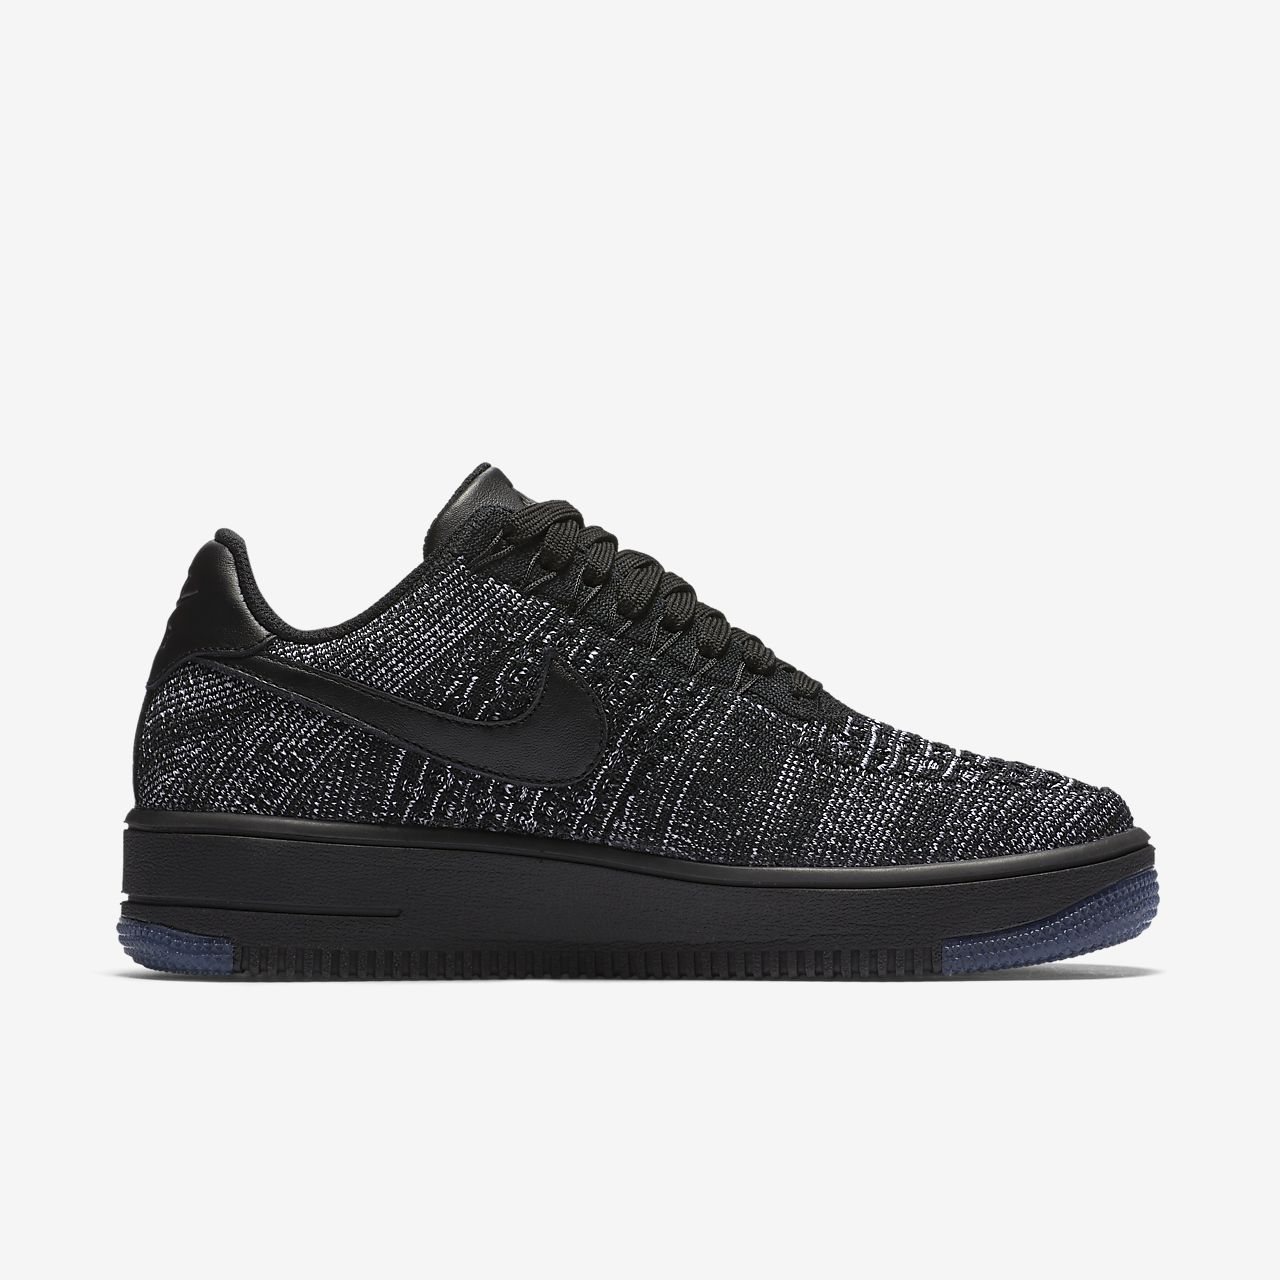 nike air force 1 flyknit low women 39 s shoe. Black Bedroom Furniture Sets. Home Design Ideas